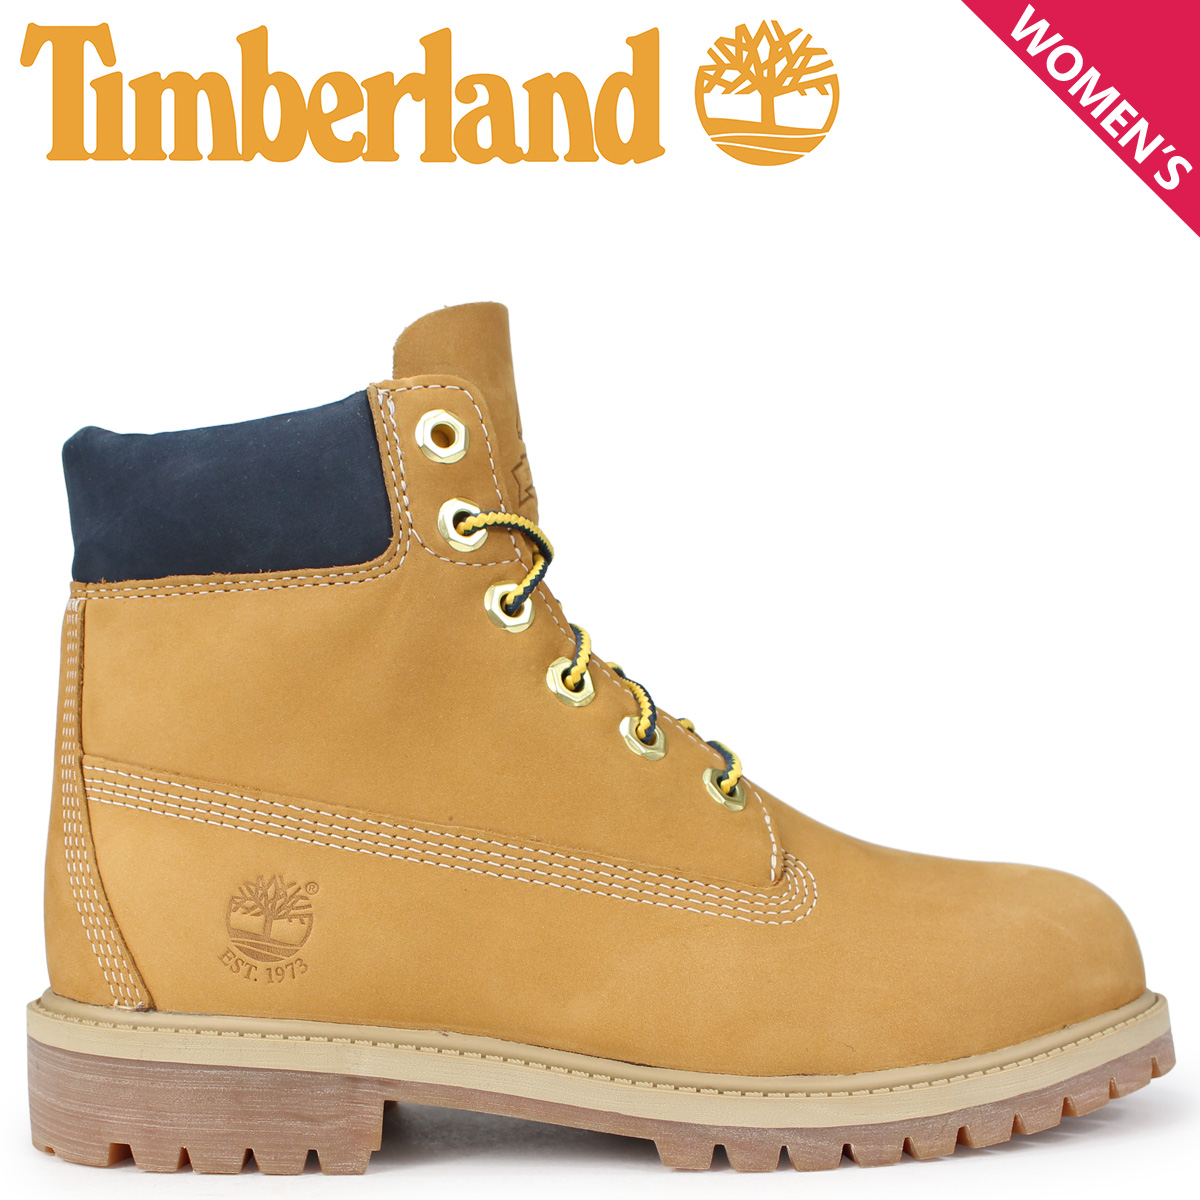 7be988274e0 Timberland boots Lady's 6 inches Timberland kids JUNIOR 6-INCH PREMIUM  WATERPROOF BOOTS A1VE5 W ワイズウィート